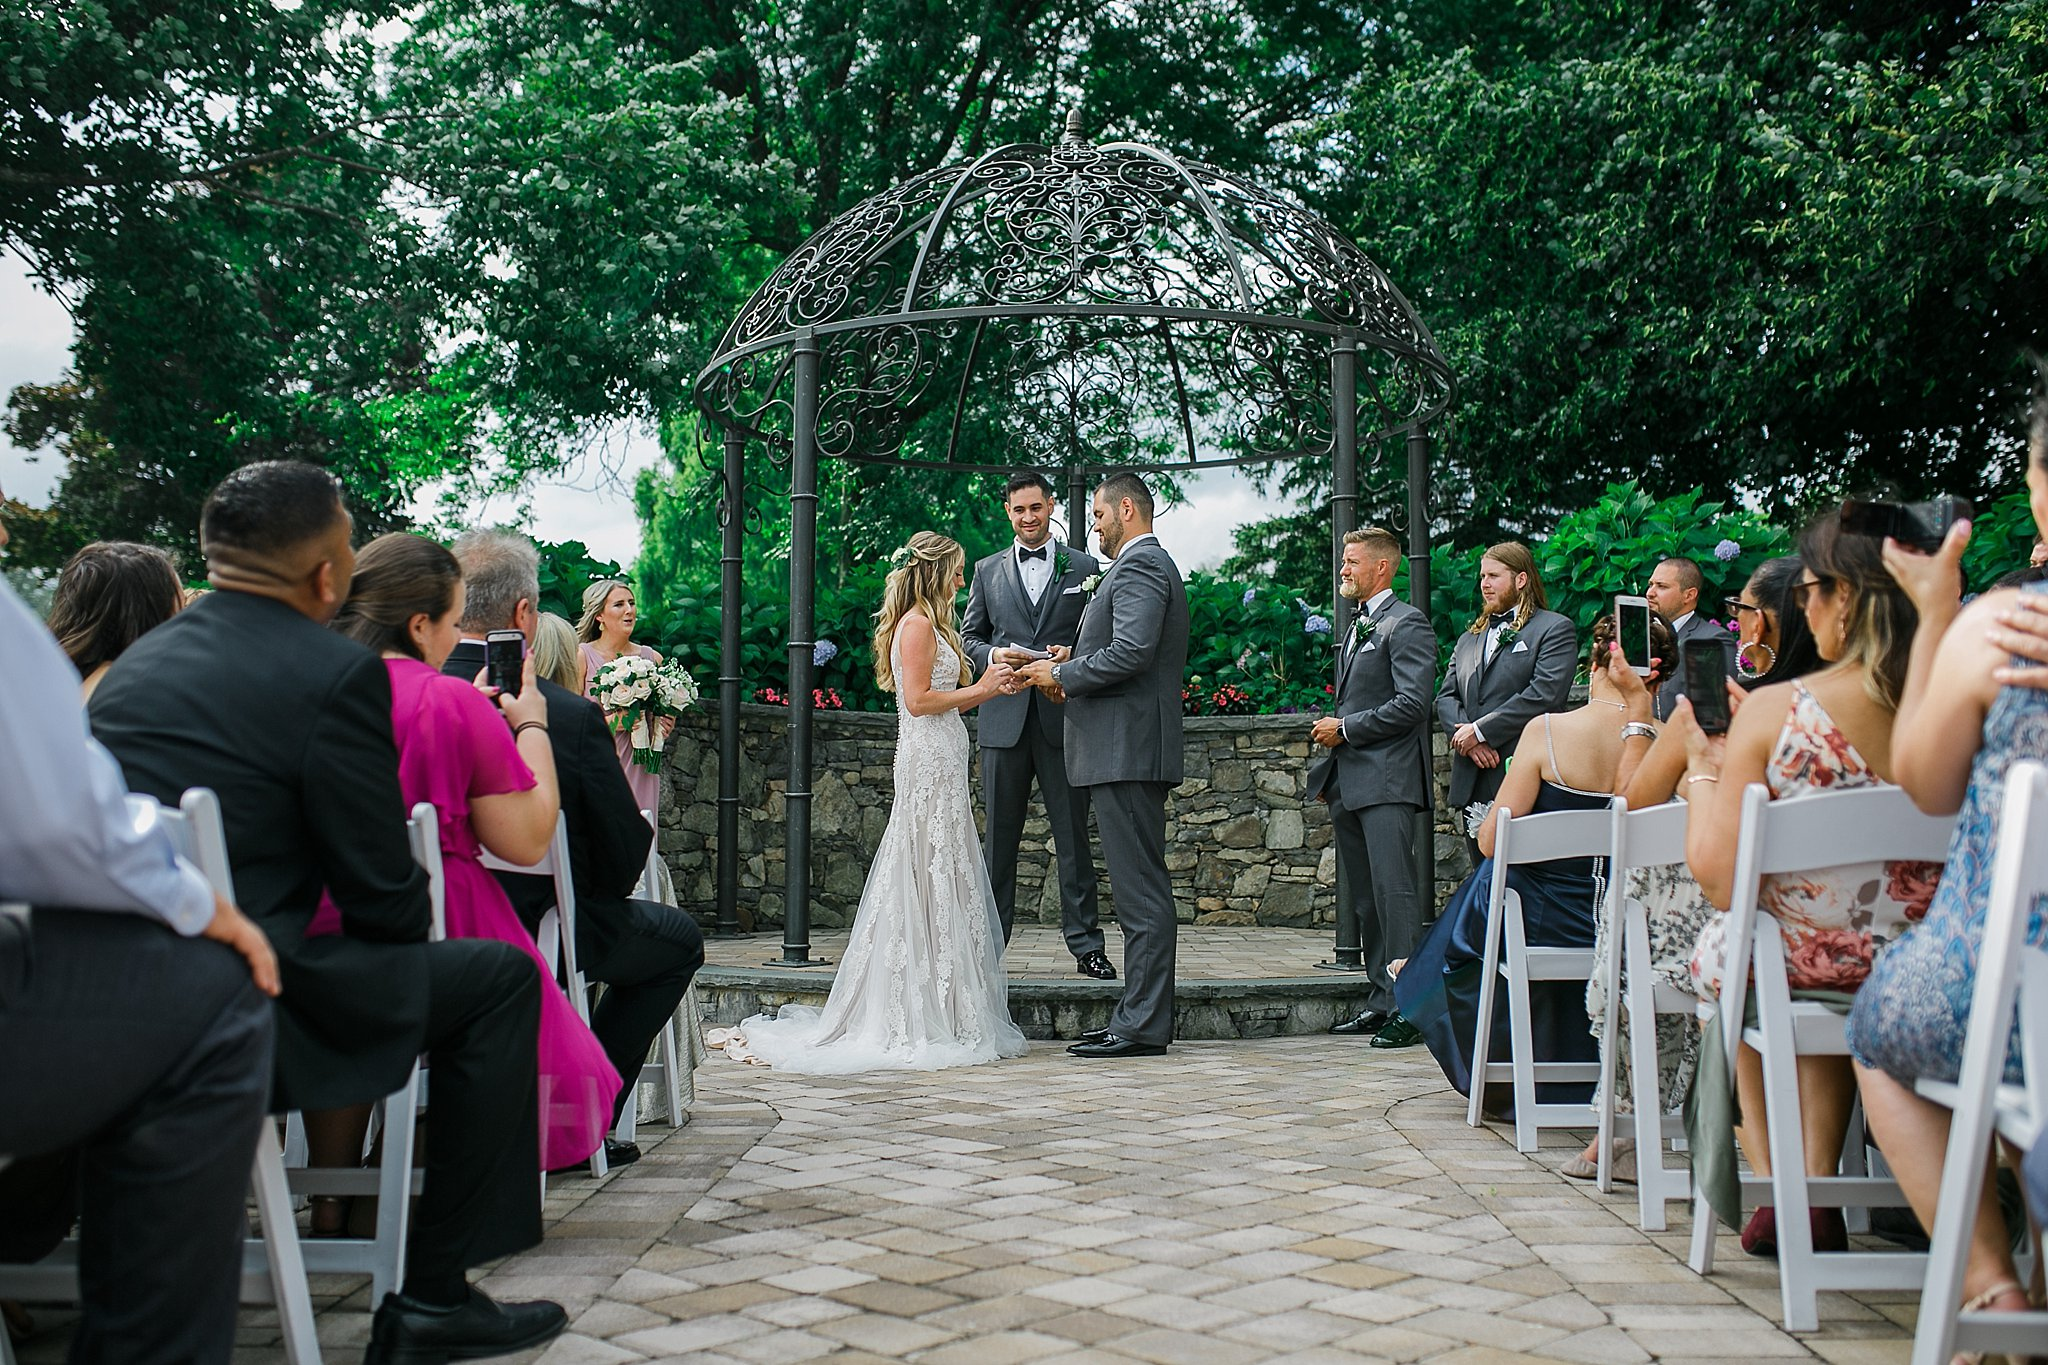 West Hills Country Club Wedding July Wedding Hudson Valley Wedding Hudson Valley Wedding Photographer Sweet Alice Photography71.jpg